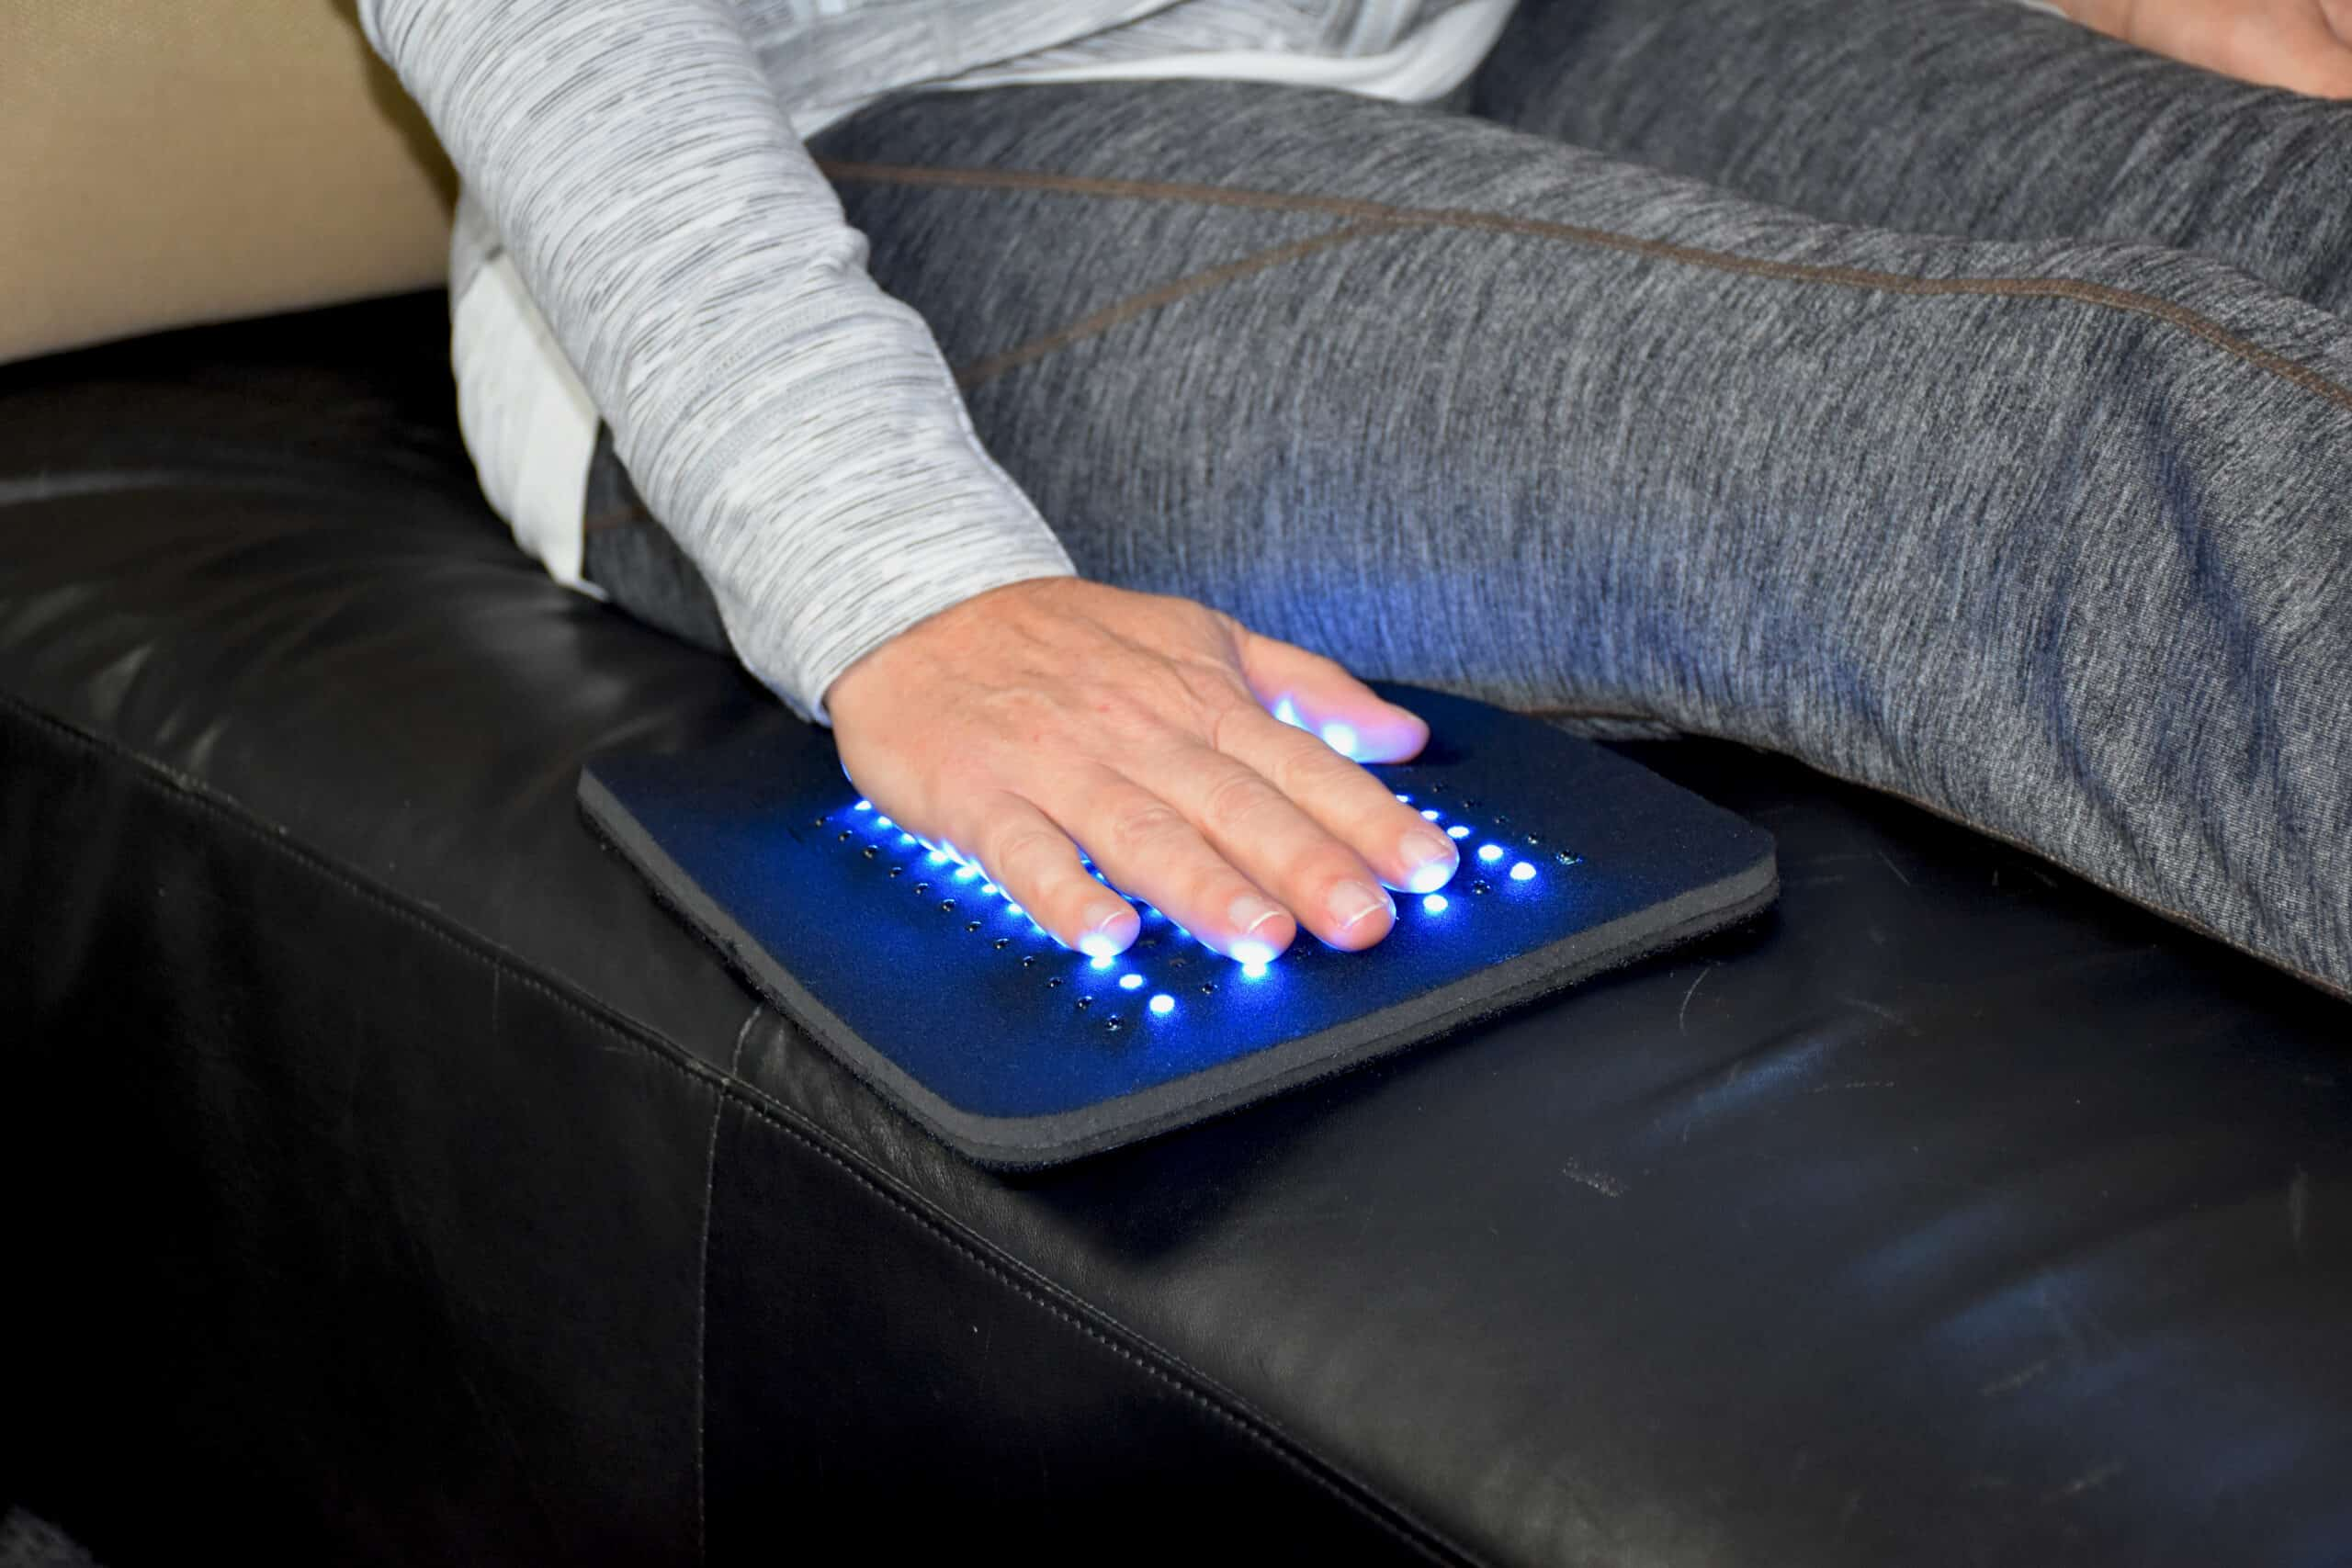 132 Blue LED Light Therapy Pad